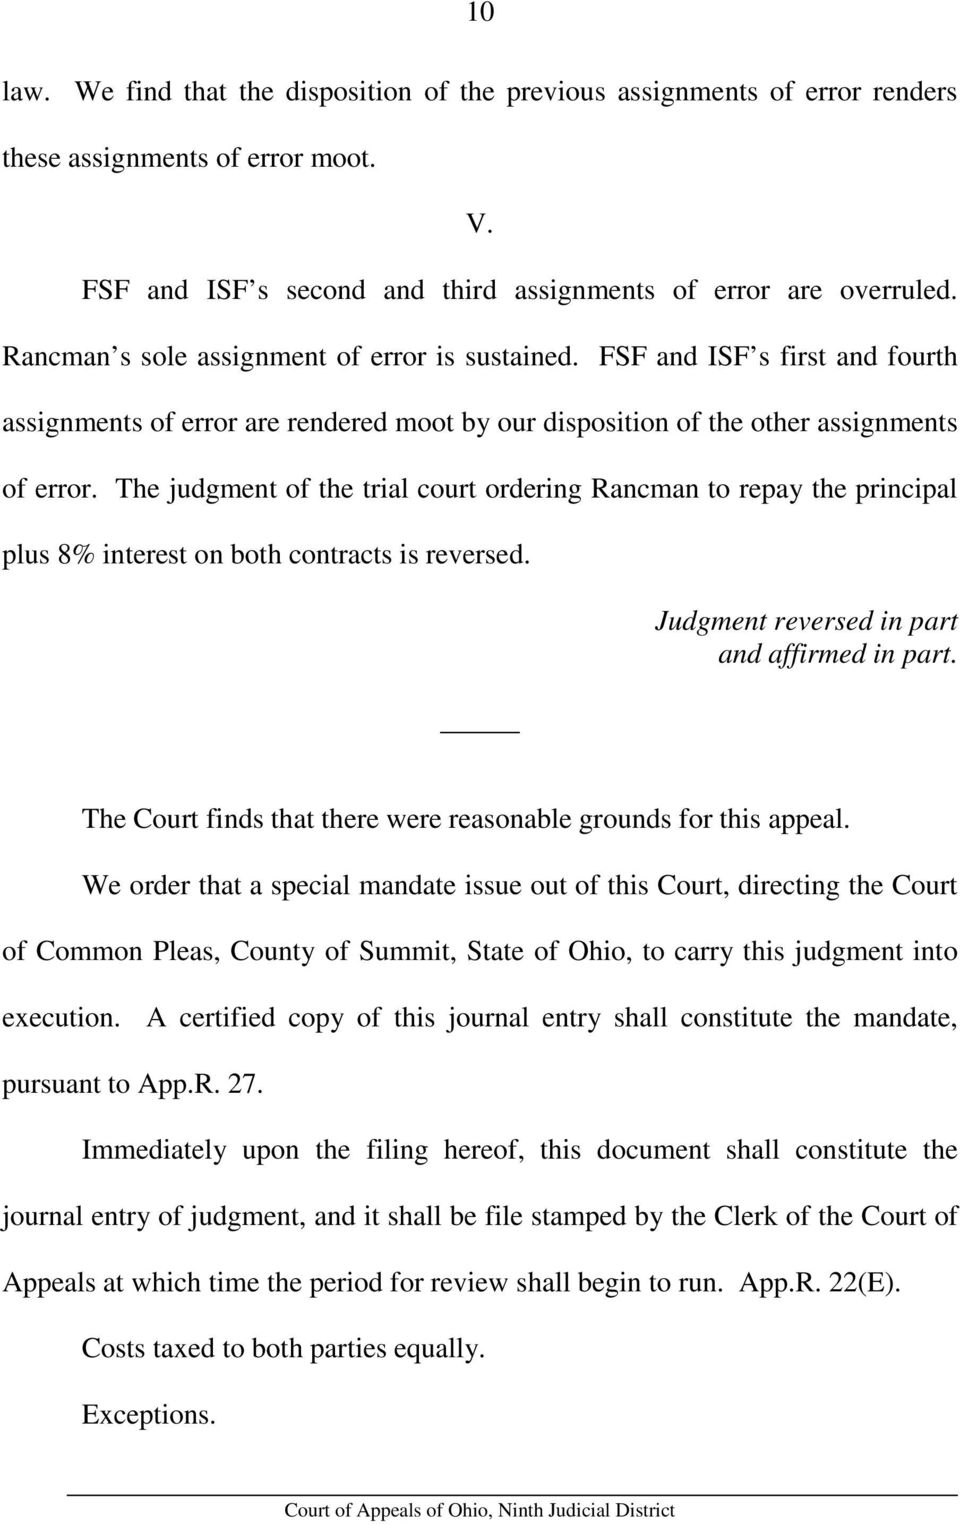 The judgment of the trial court ordering Rancman to repay the principal plus 8% interest on both contracts is reversed. Judgment reversed in part and affirmed in part.